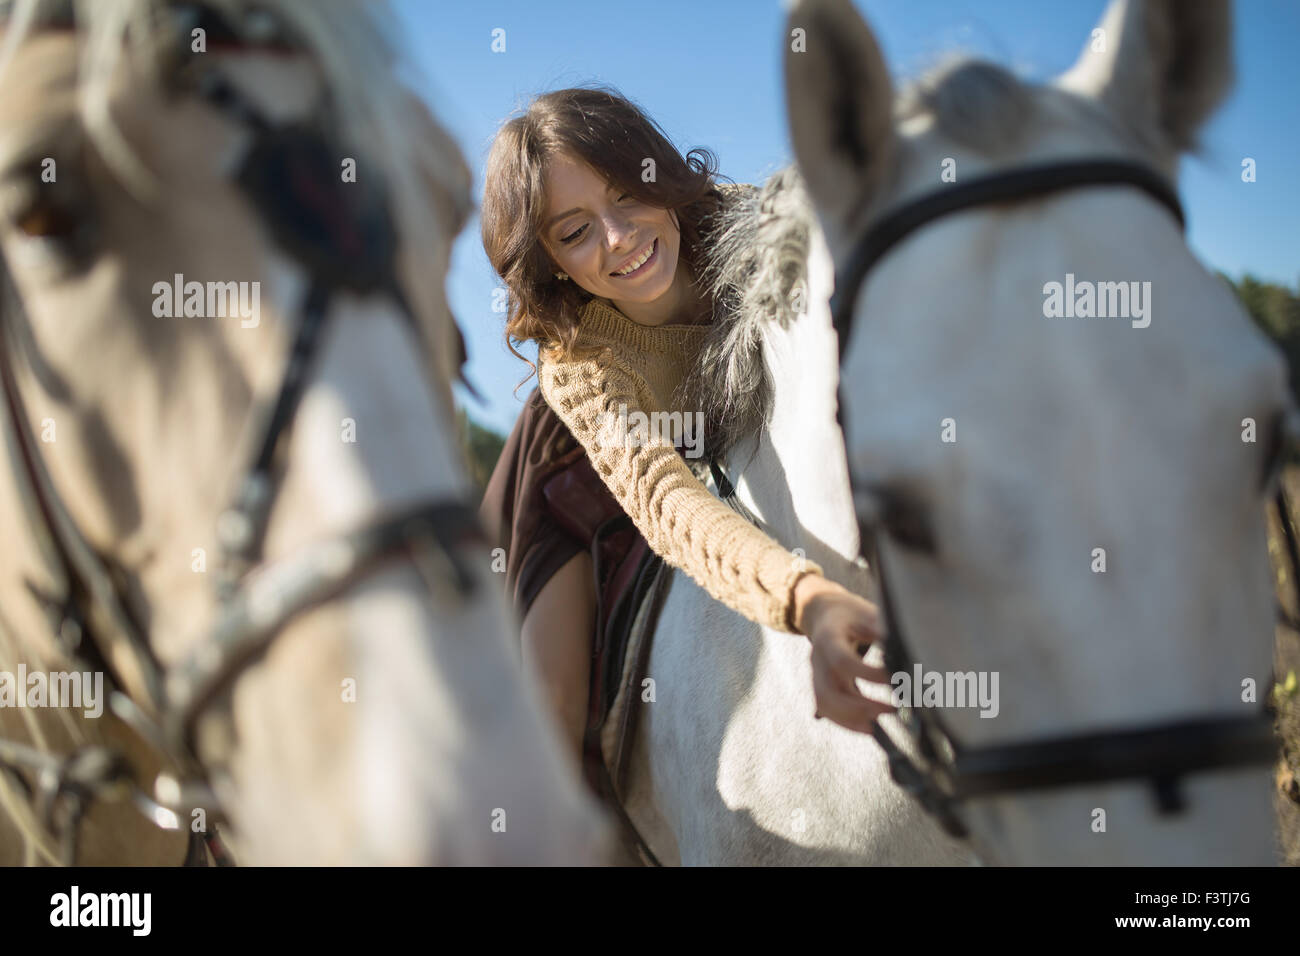 Beautiful girl riding a horse - Stock Image